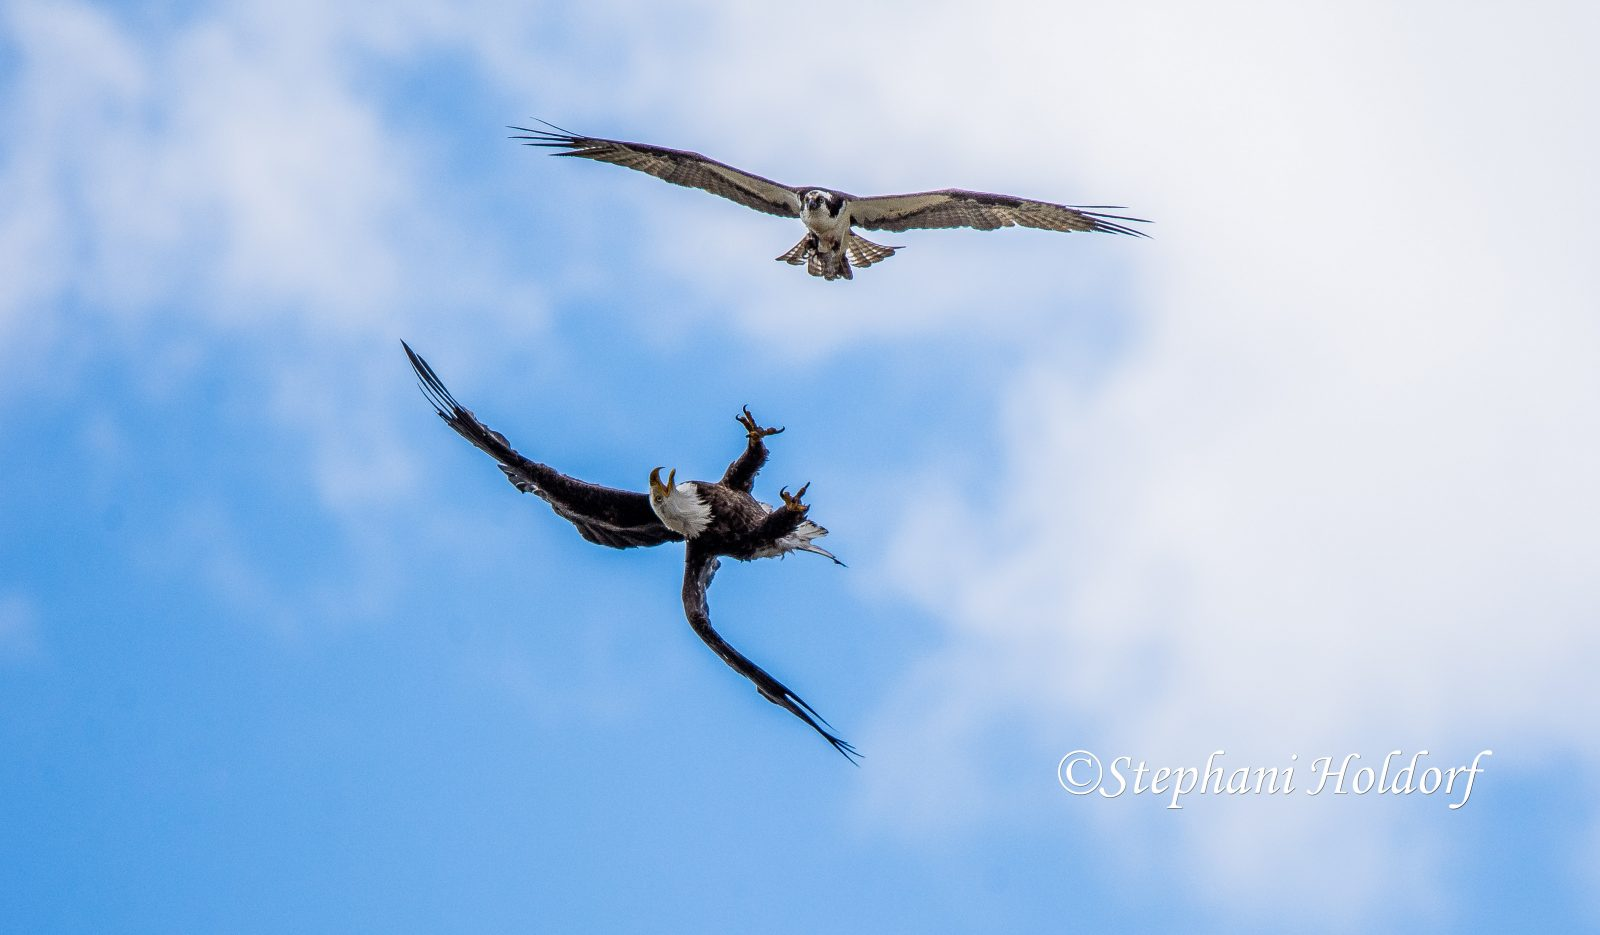 Osprey & Eagle fighting over the catch of the day